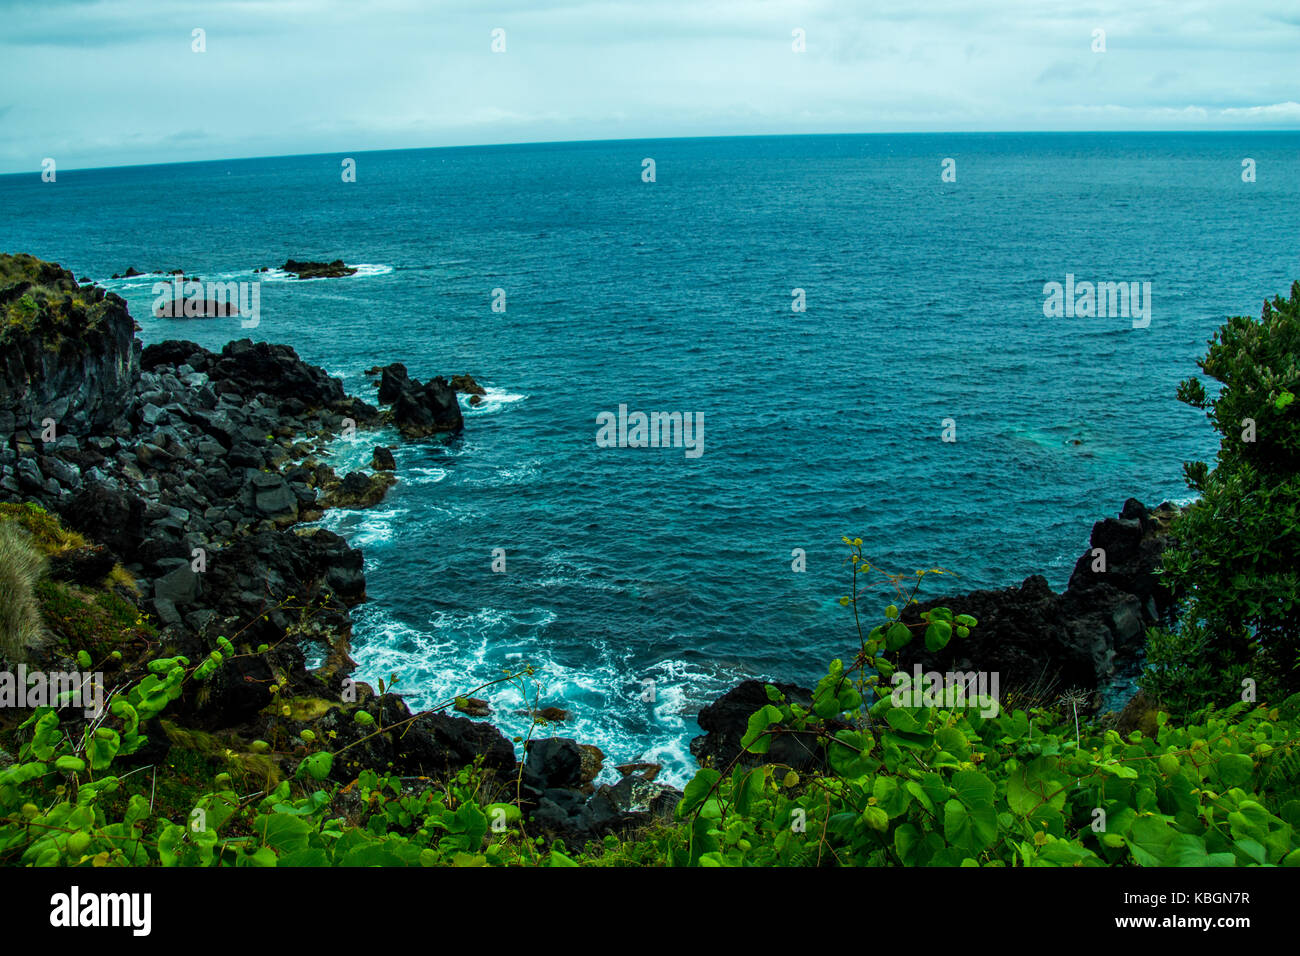 Azores islands belong to Portugal, this is the beautiful ocean that surrounds the Azores islands, photograph with - Stock Image